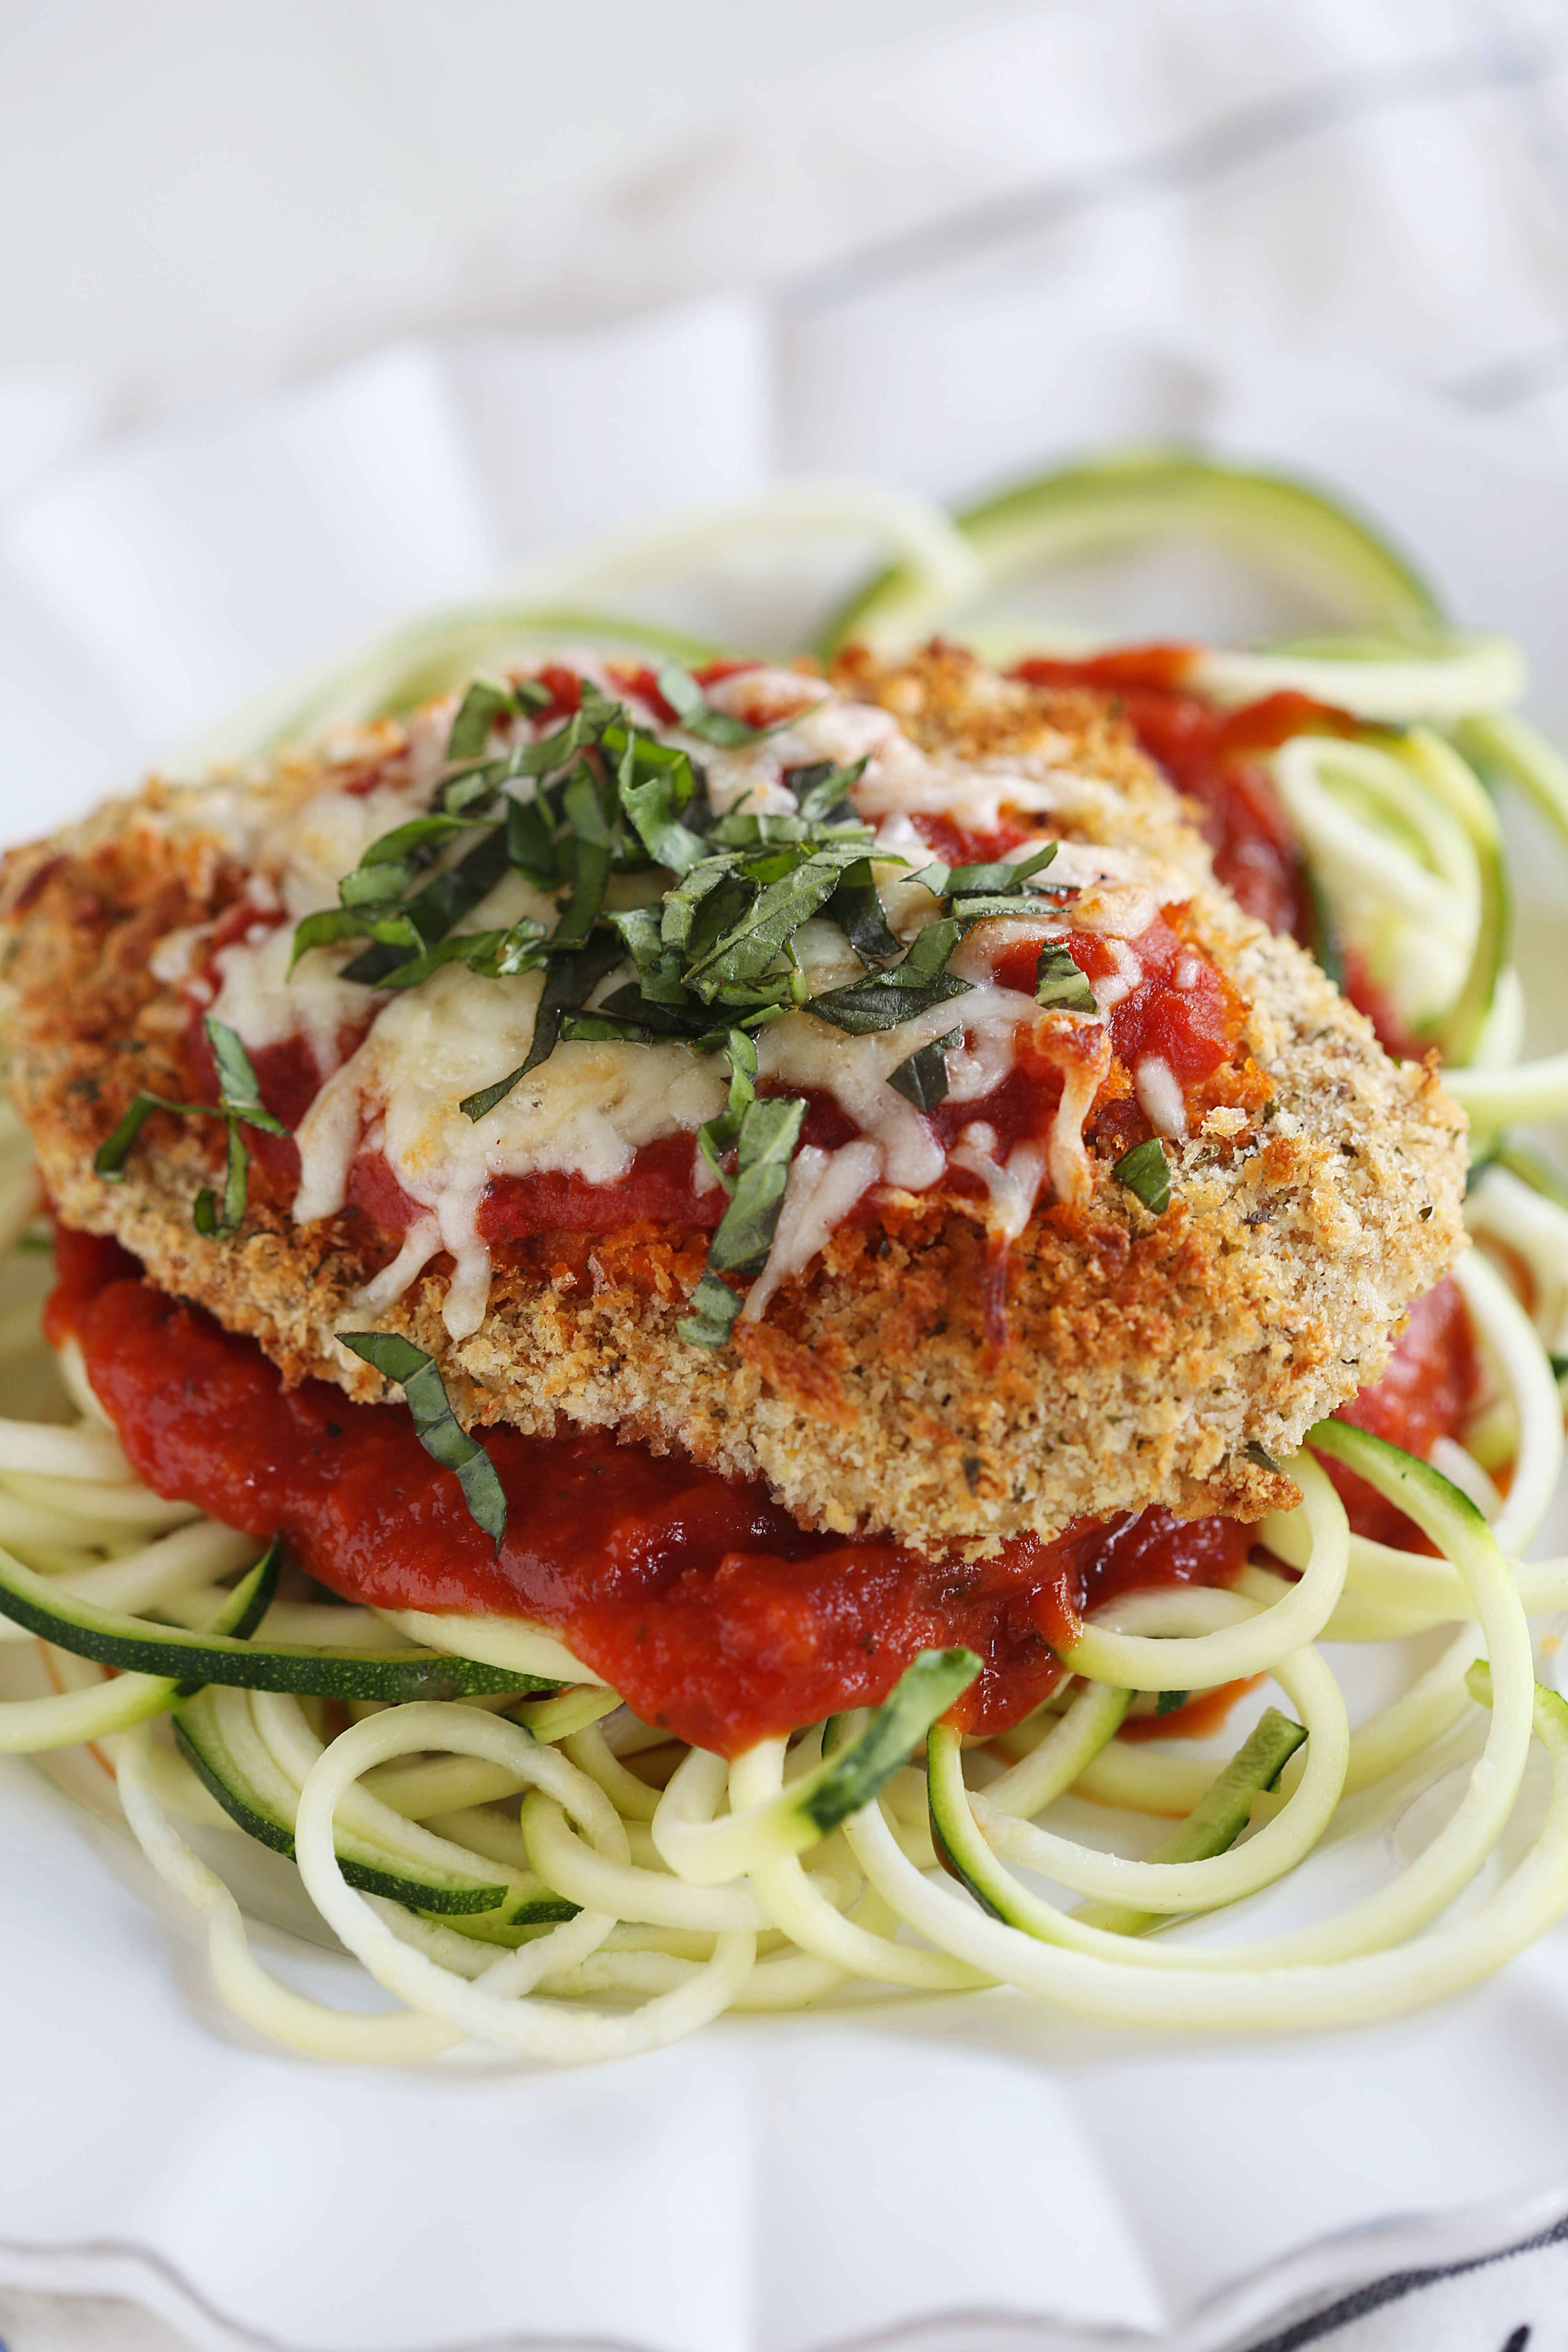 This recipe for Baked Chicken Parmesan with Zucchini Noodles is healthy, delicious and can easily be made in just 30 minutes or less!